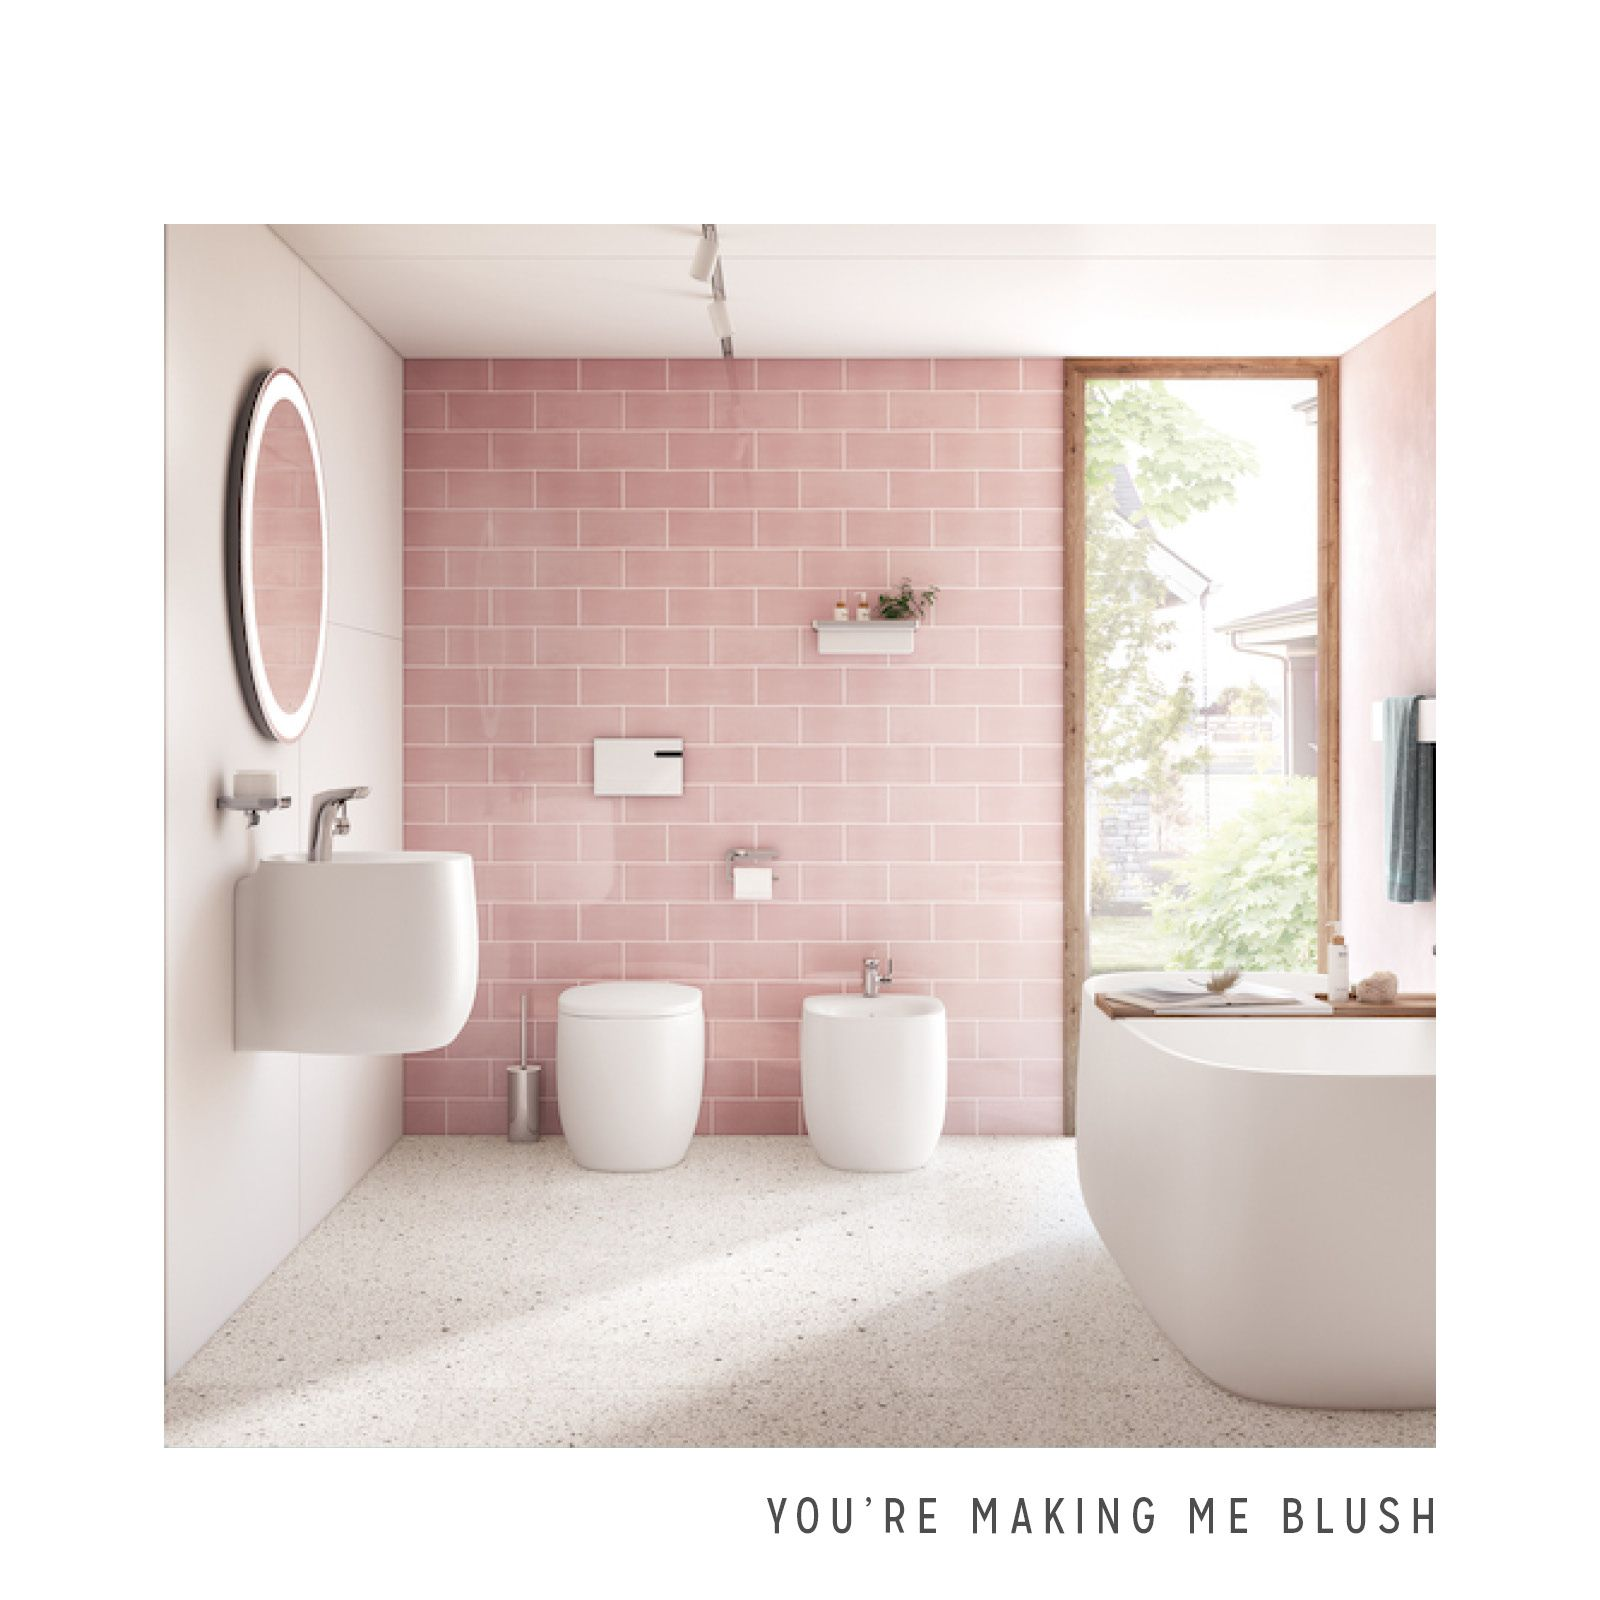 Blush Pink Wall Tile Tiny House Bathroom Pink Bathroom Decor Pink Bathroom Tiles